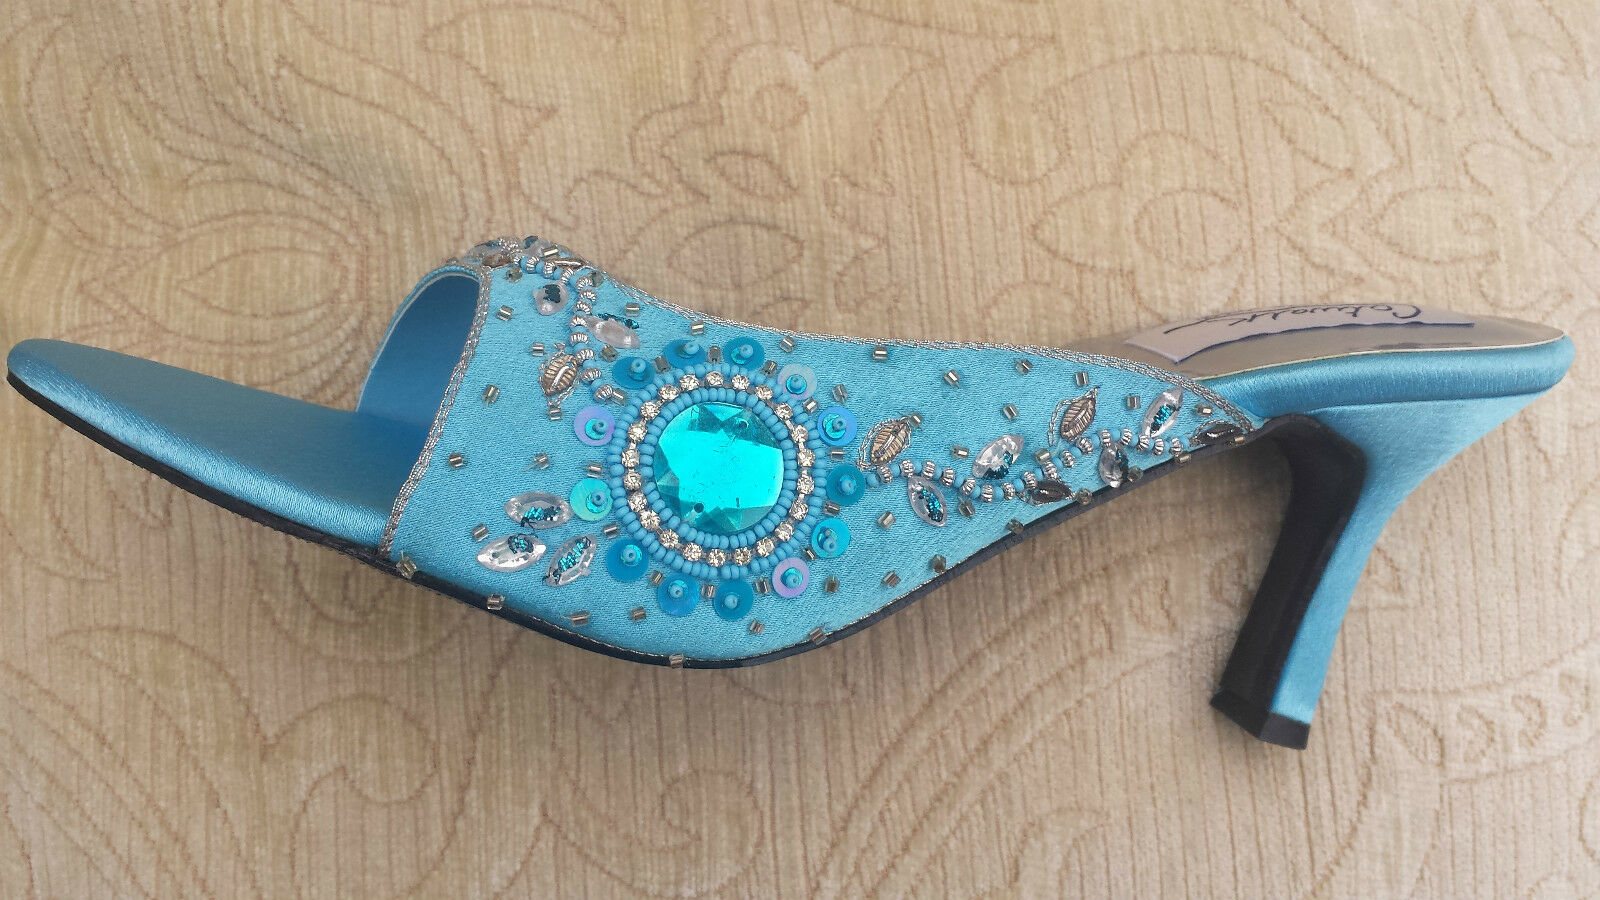 TURQUOISE LADIES WEDDING PARTY SLIPPER/MULES/<wbr/>BACKLESS SMALL HEEL SIZE 11